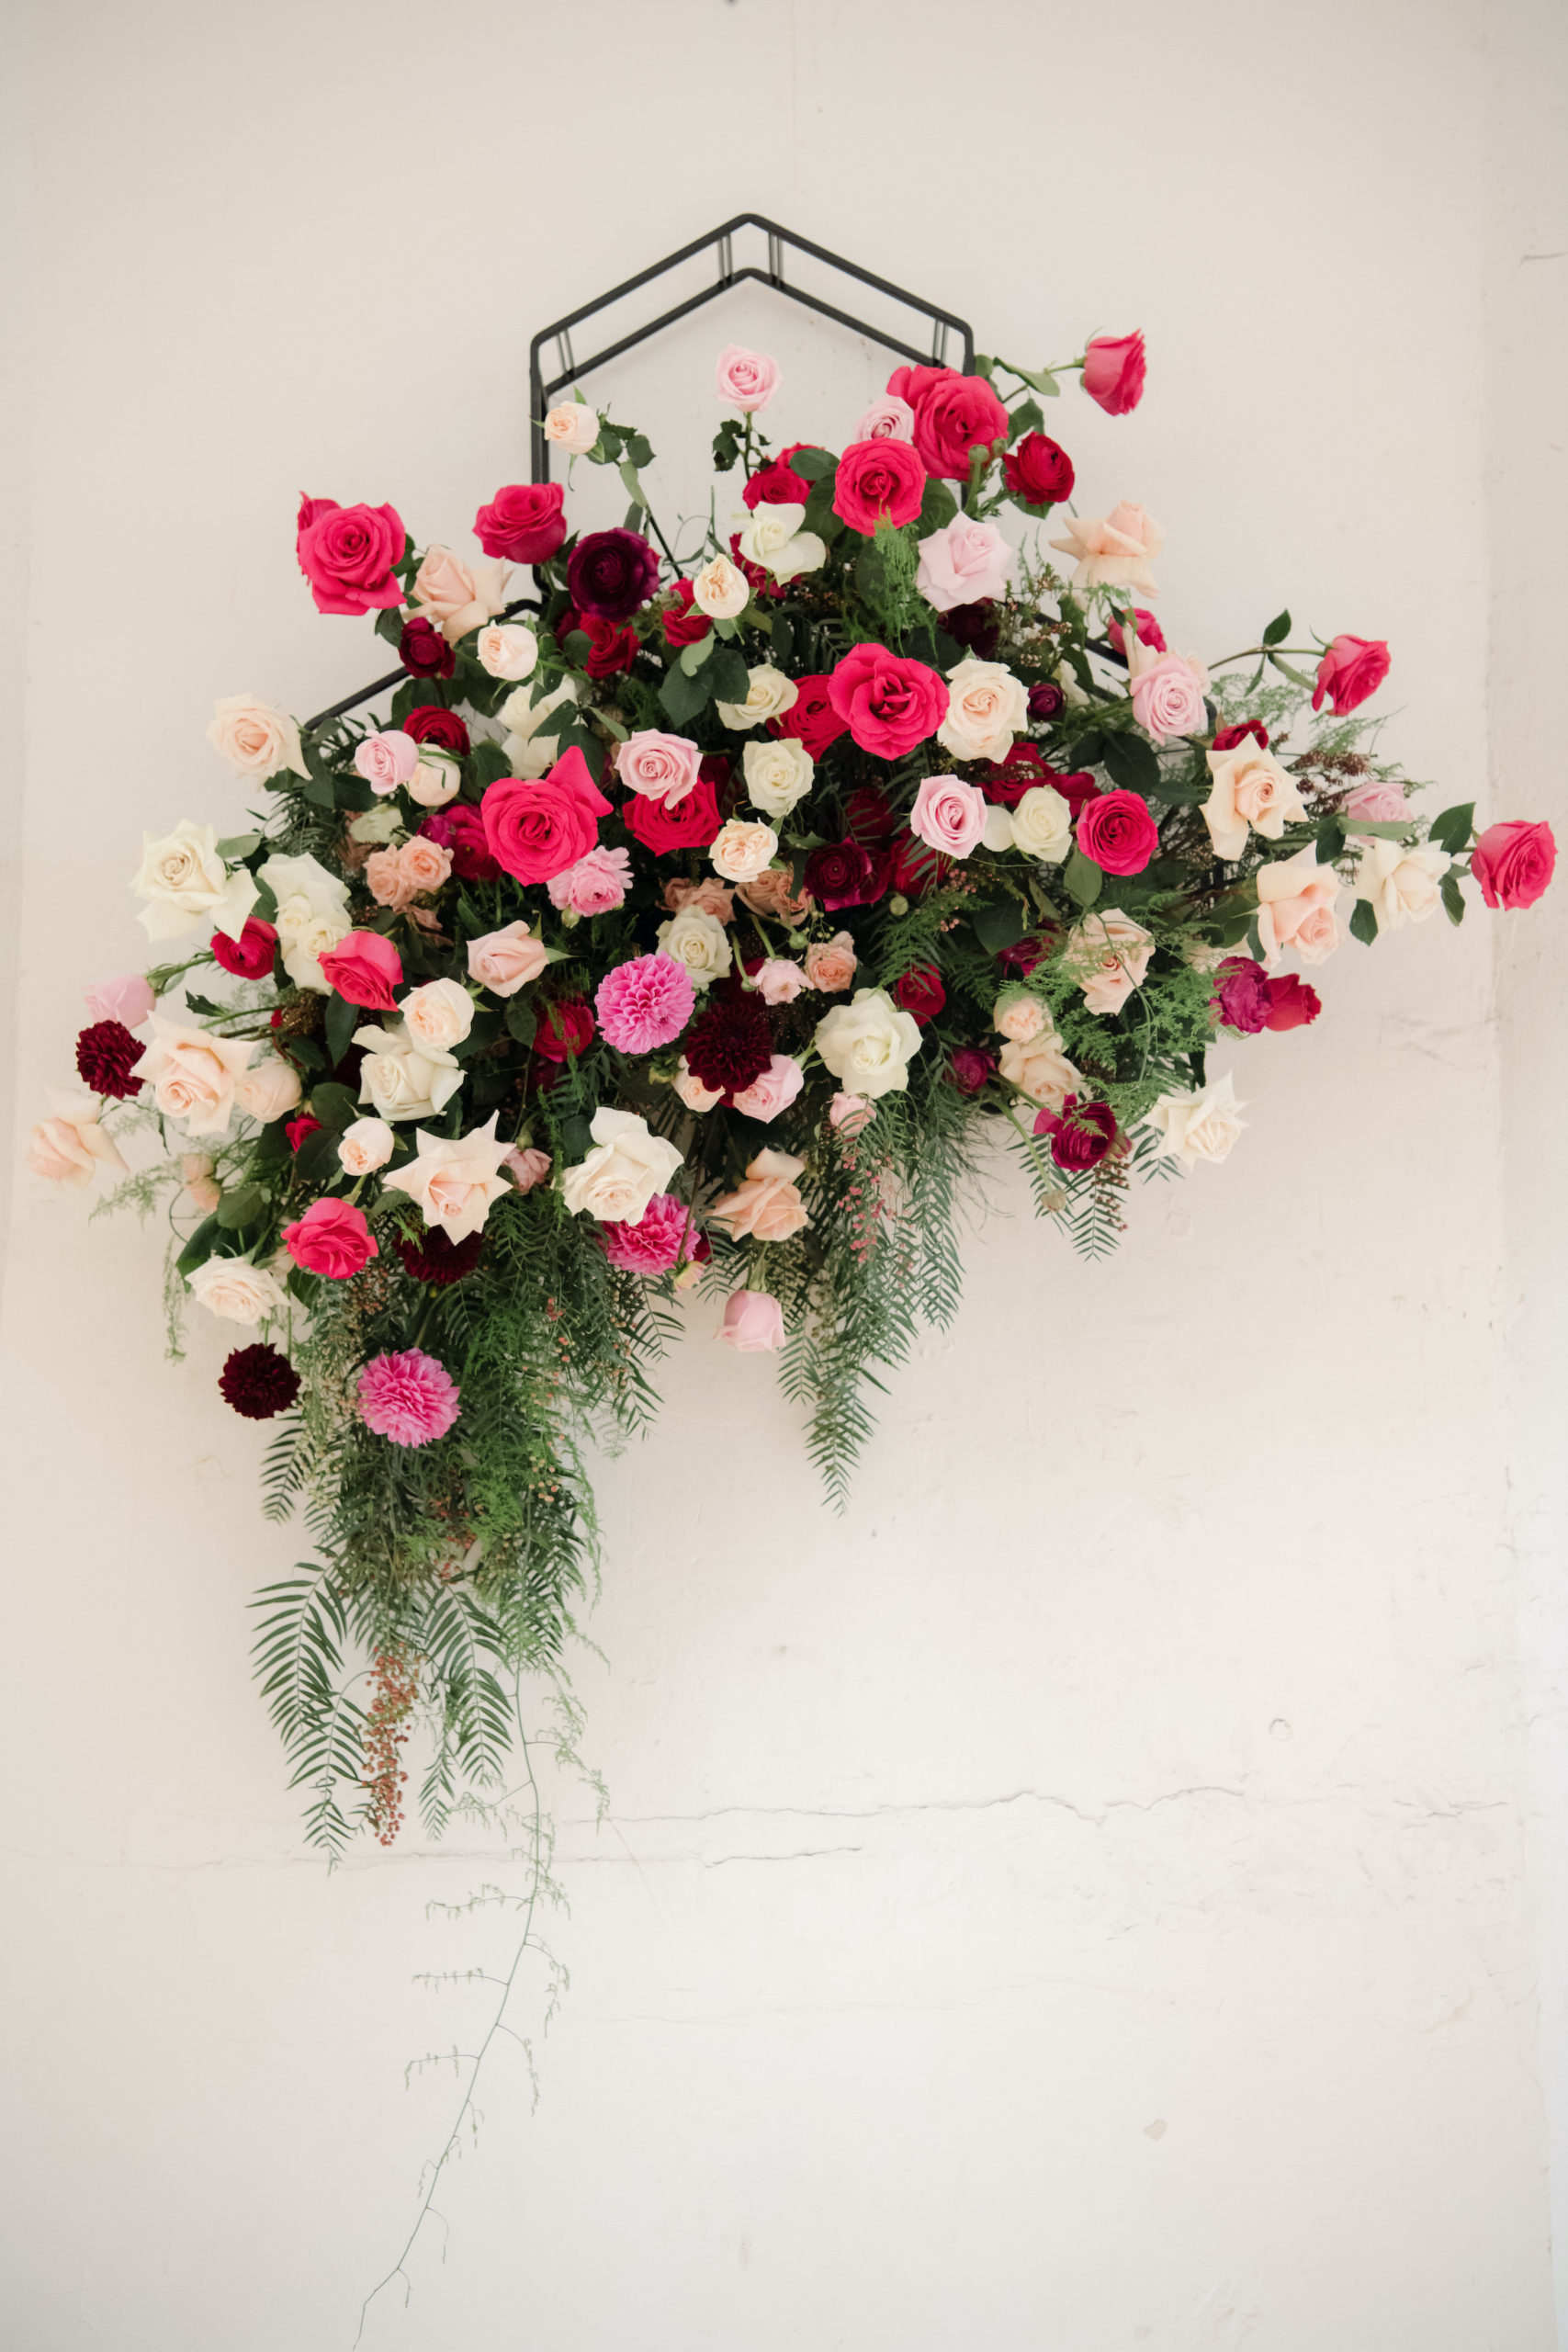 Melbourne Wedding Florist Ceremony Backdrop Flowers 3 Scaled | Thrive Flowers & Events